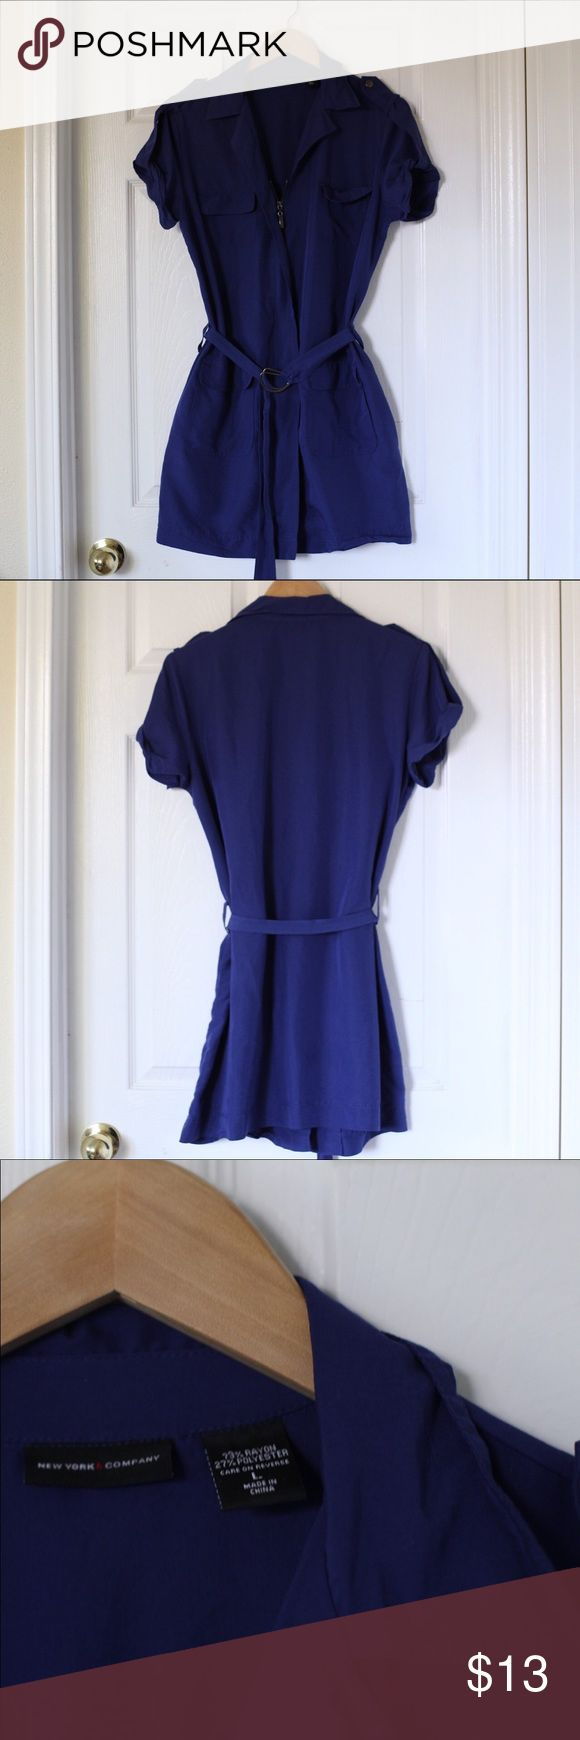 Blue Zip Up Dress This Blue Front zip dress from New York & Company is perfect for spring and summer. Lightweight, and pockets at the hips and on the chest. Don't hesitate to ask a question or make an offer. New York & Company Dresses